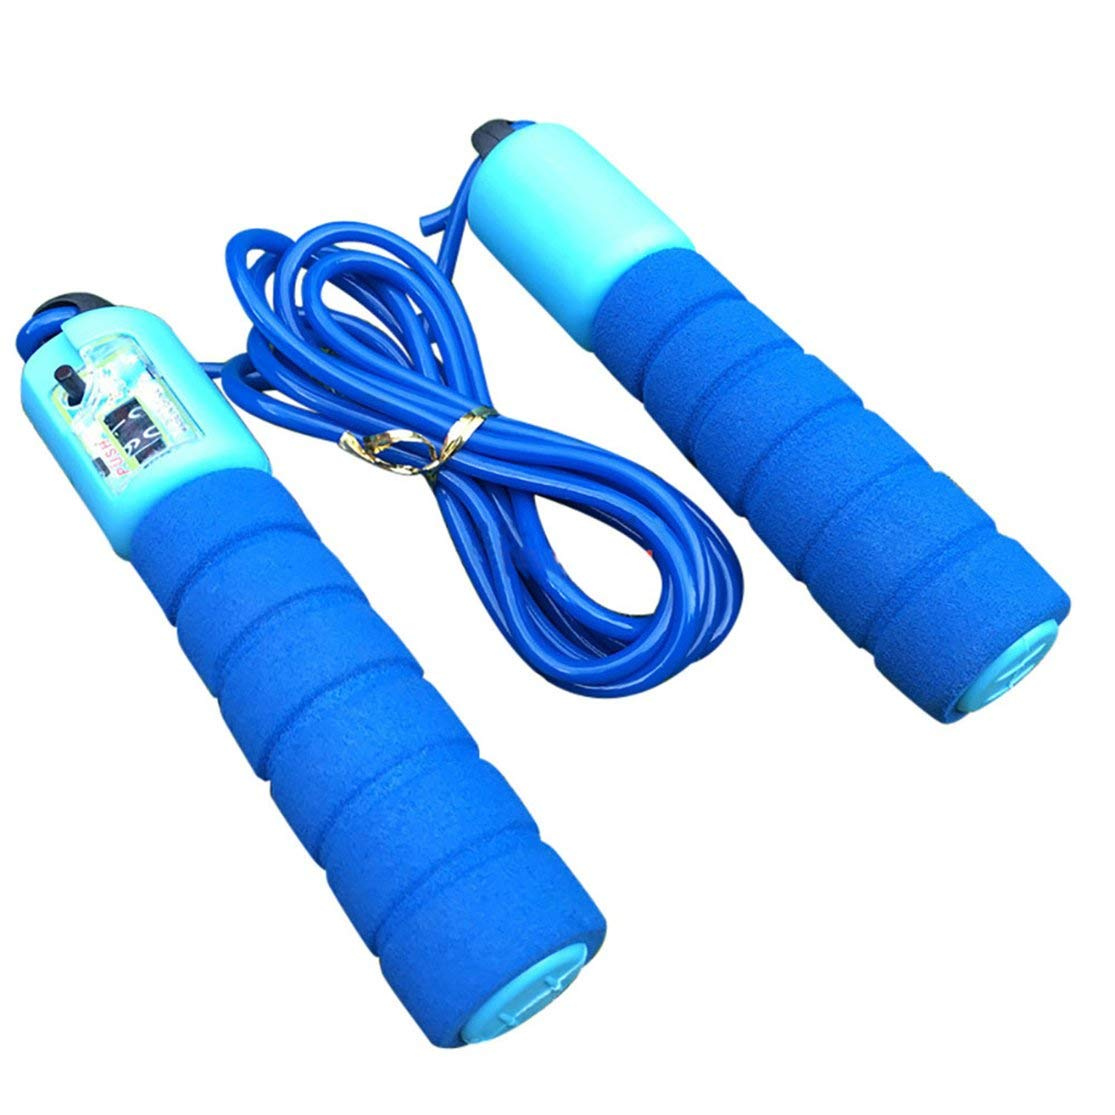 LouiseEvel215 Jump Rope Skipping Rope with Foam Handled Adjustable Jump Rope with Counter Outside Workout Home Workouts Cross Fitness Rope Skipping Weight-Loss Boxing Gym Used